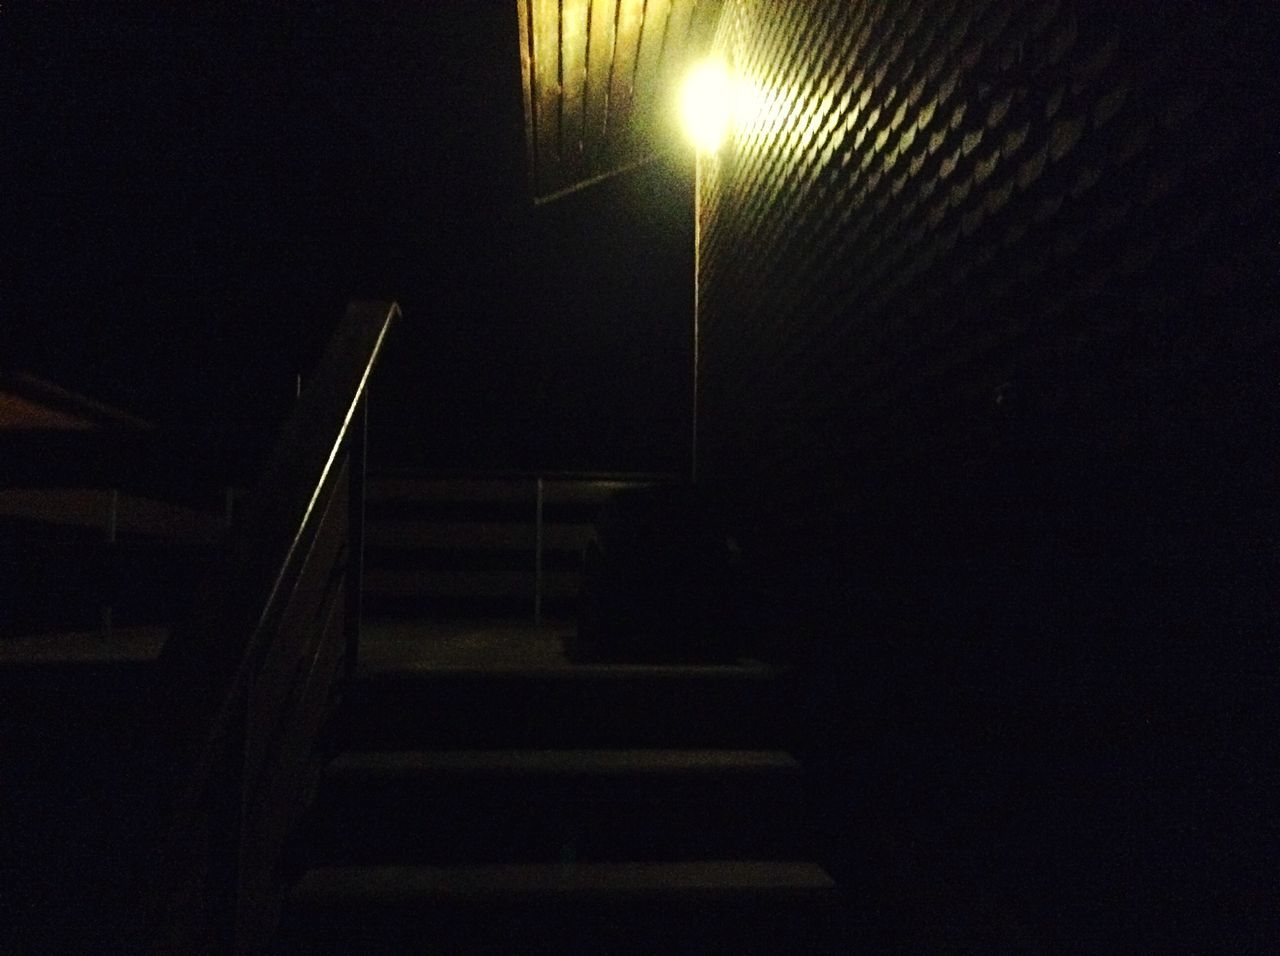 Dark Light And Shadow Night Lights Light Steps Stairs Nightphotography Night House